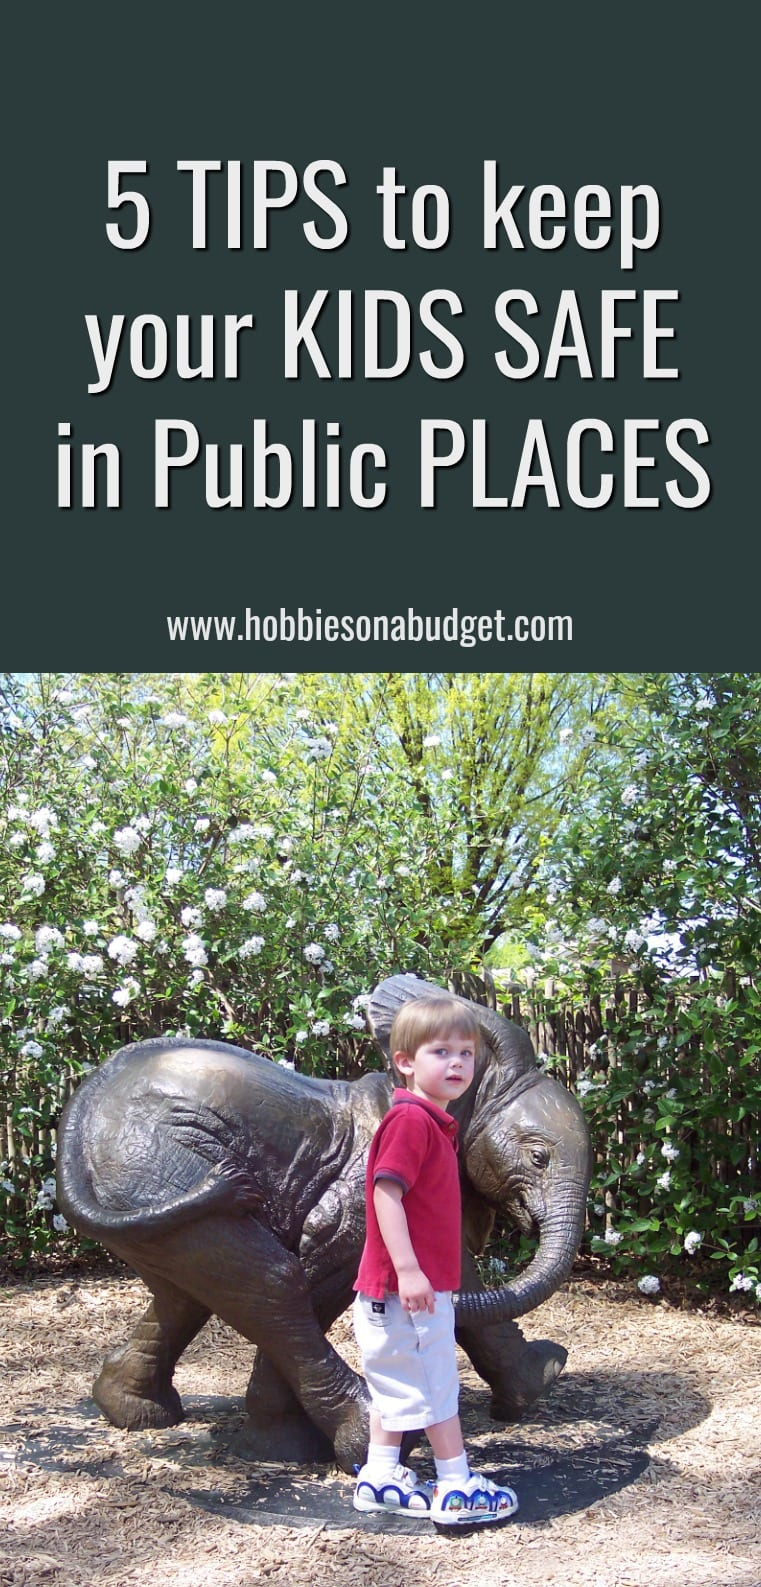 Keep Kids safe in public places